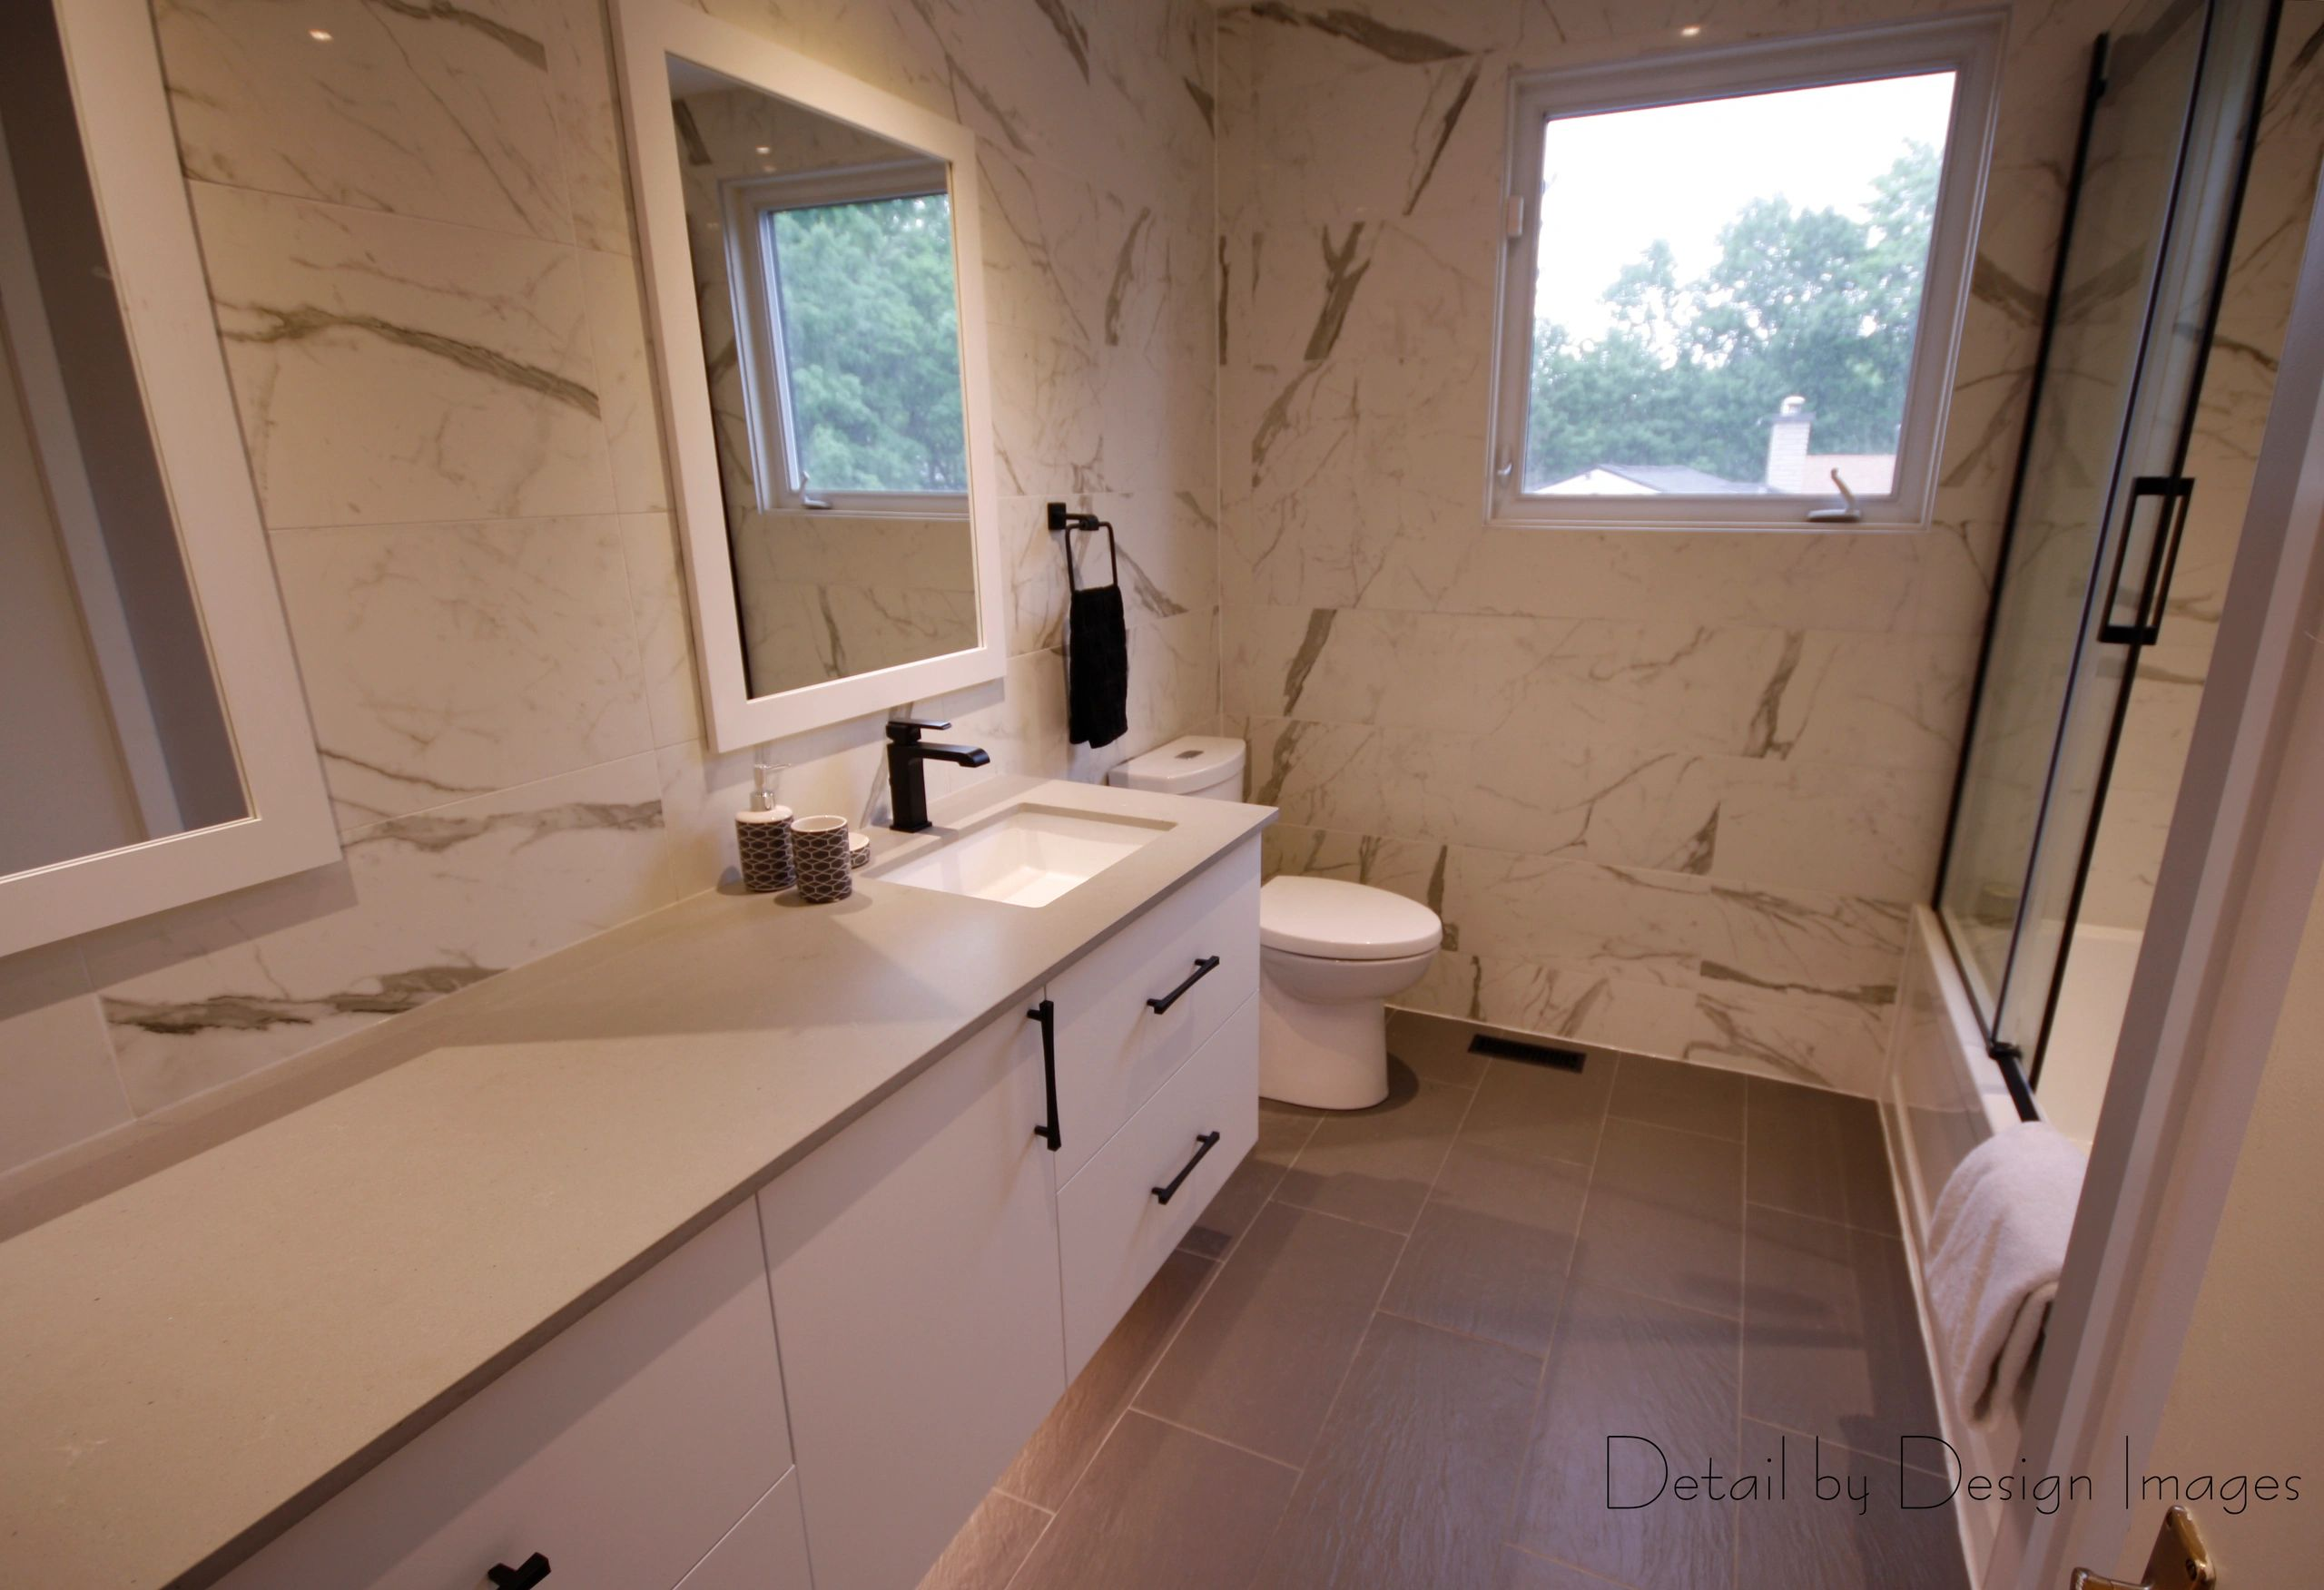 Bathroom renovation, marble-look tile, custom cabinetry, bathtub shower, transitional/contemporary d